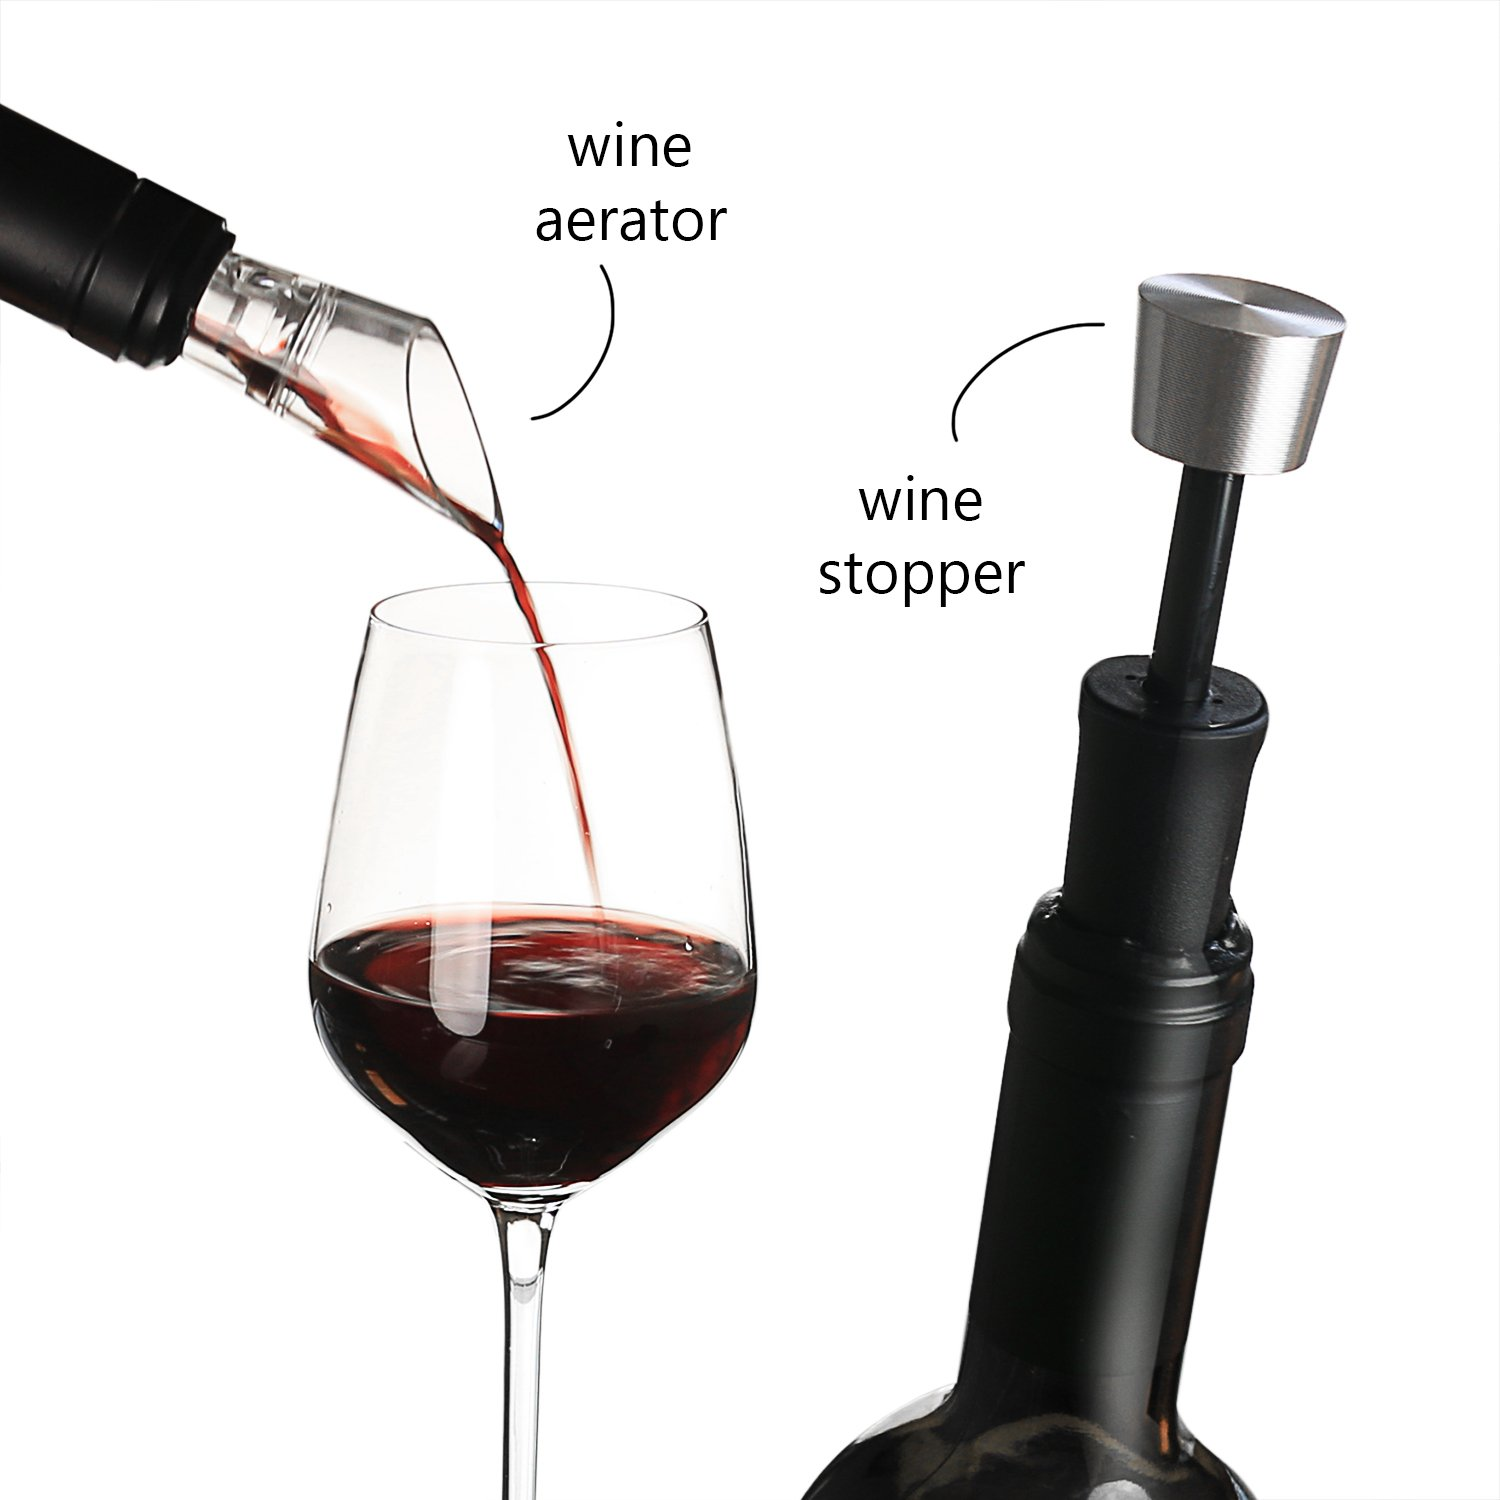 Zalik Wine Glasses Gift Set - Set Of 2 Wine Glasses, Wine Opener, Wine Stopper And Wine Aerator Pourer For Enhanced Flavor - Perfect Gift For Every Occasion - Wine Accessories - Elegant Gift Box by Zalik (Image #3)